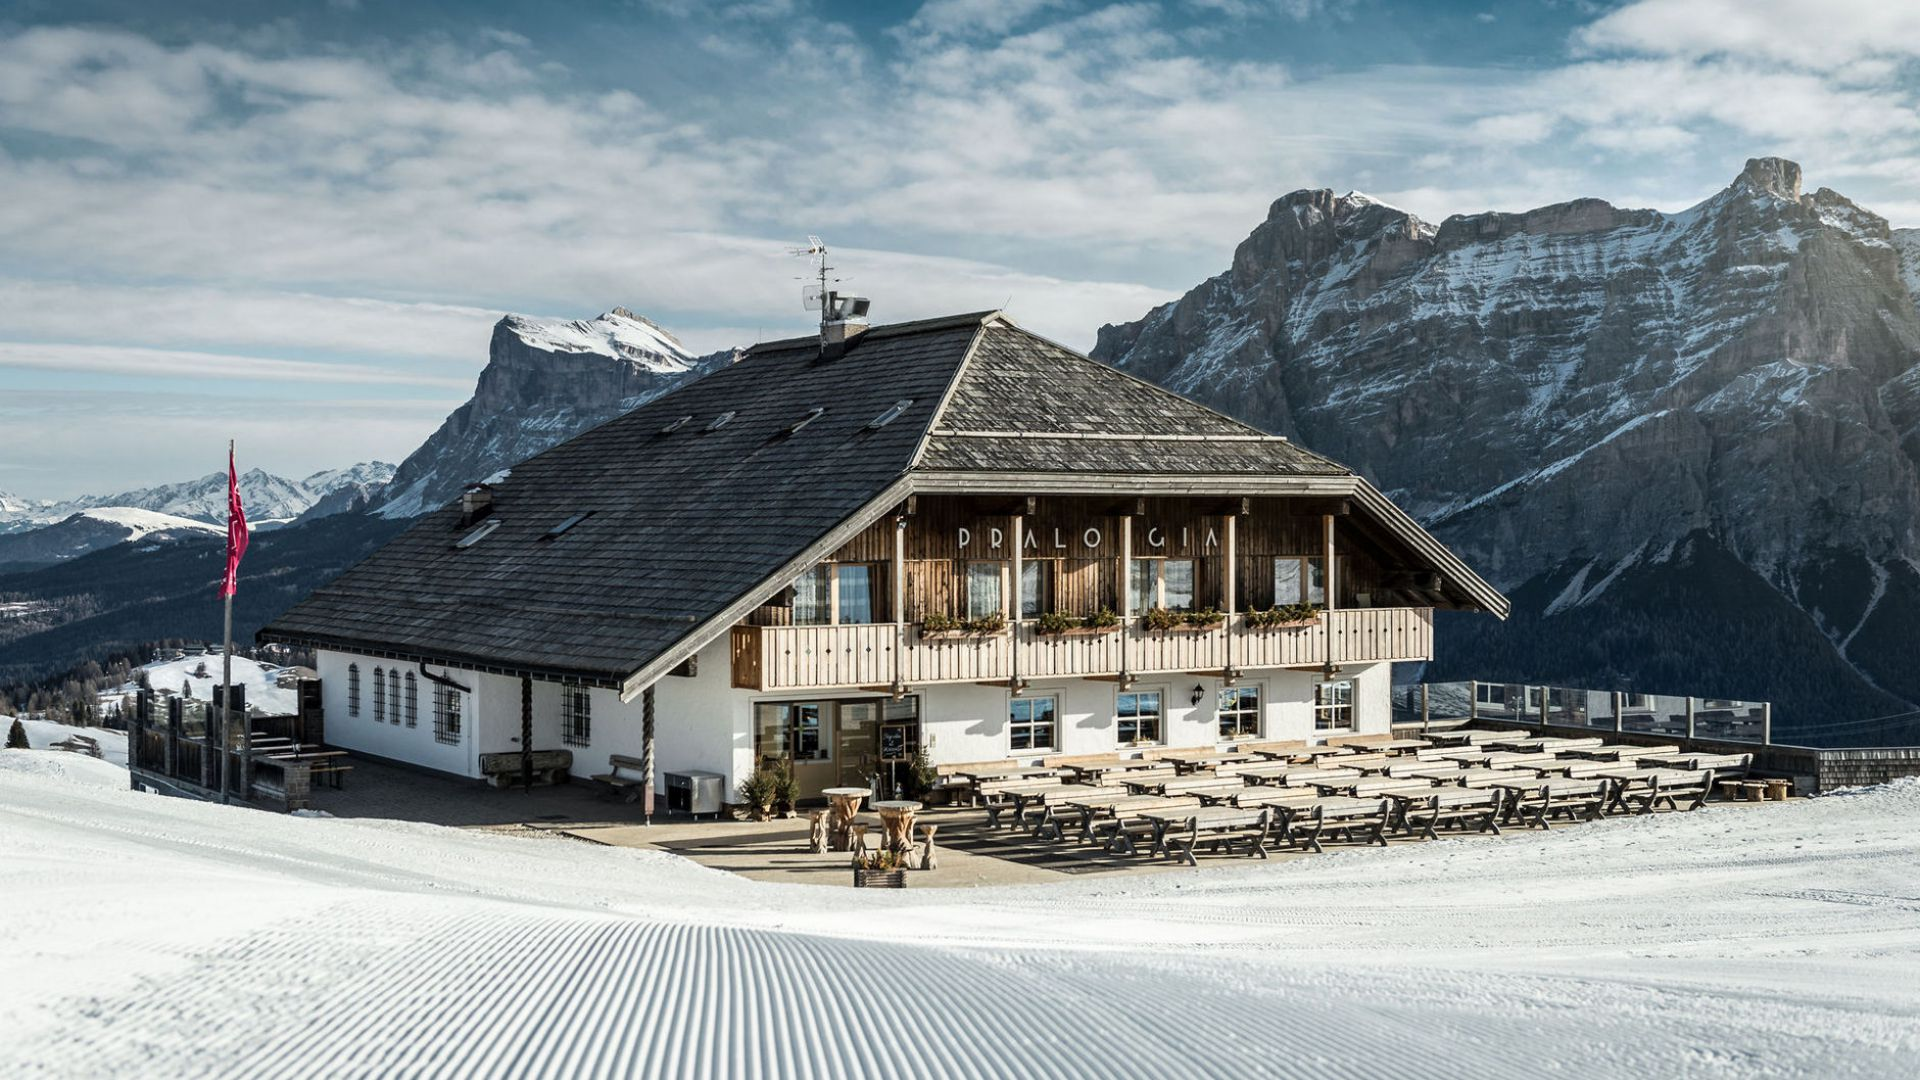 Image: Mountain Hut Pralongià in Alta Badia